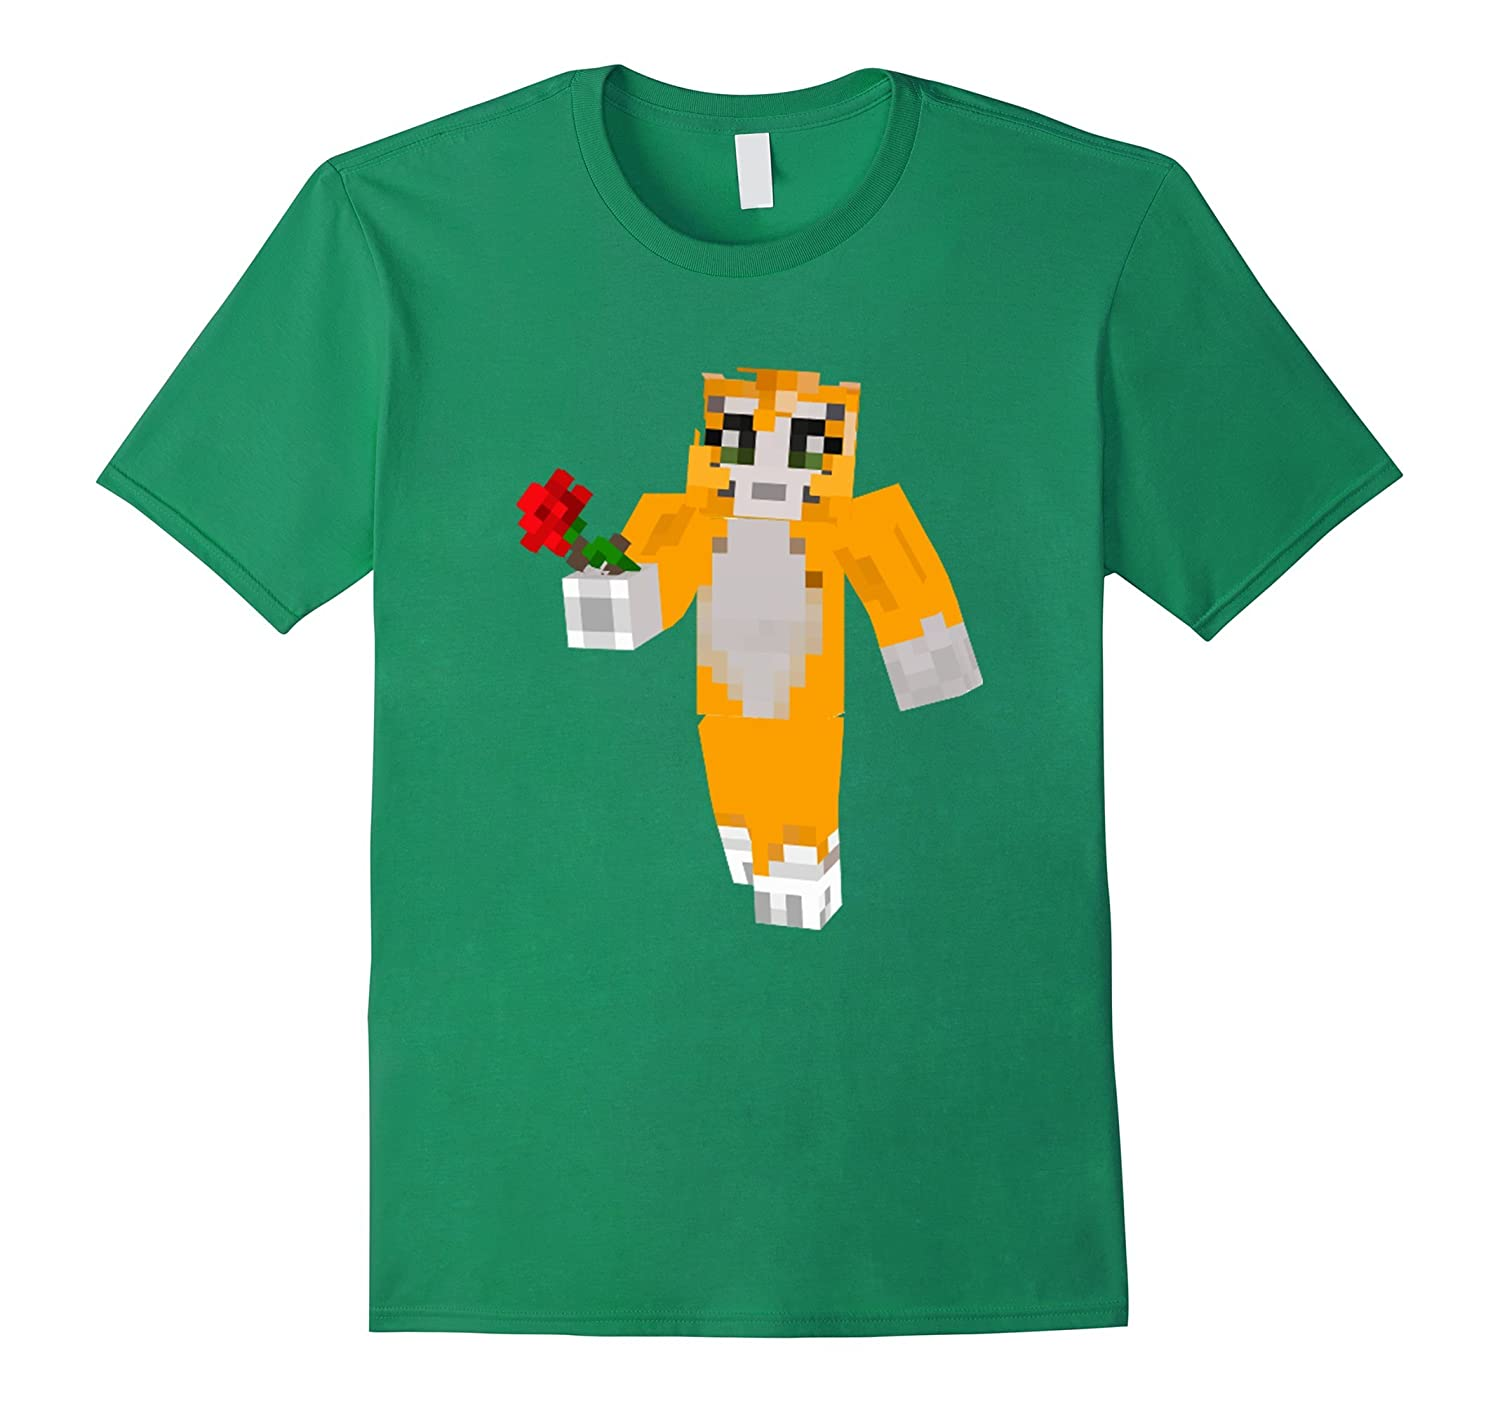 Funny stampy cats t shirts for men women kids rt rateeshirt for Silly shirts for men